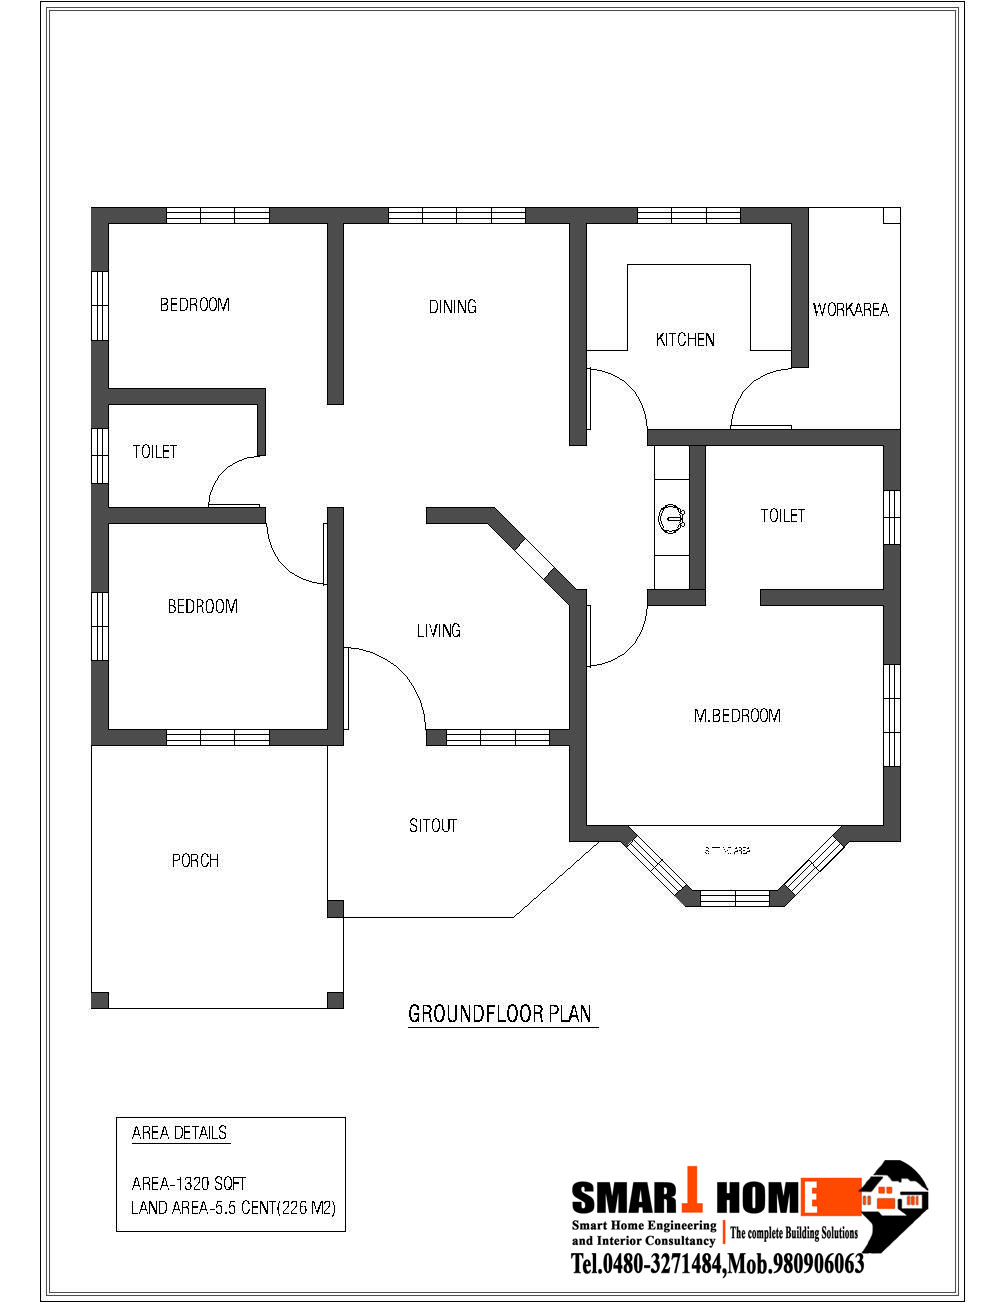 House plans and design sample architectural designs of three bedroom houses - Three bedroom house floor plans ...